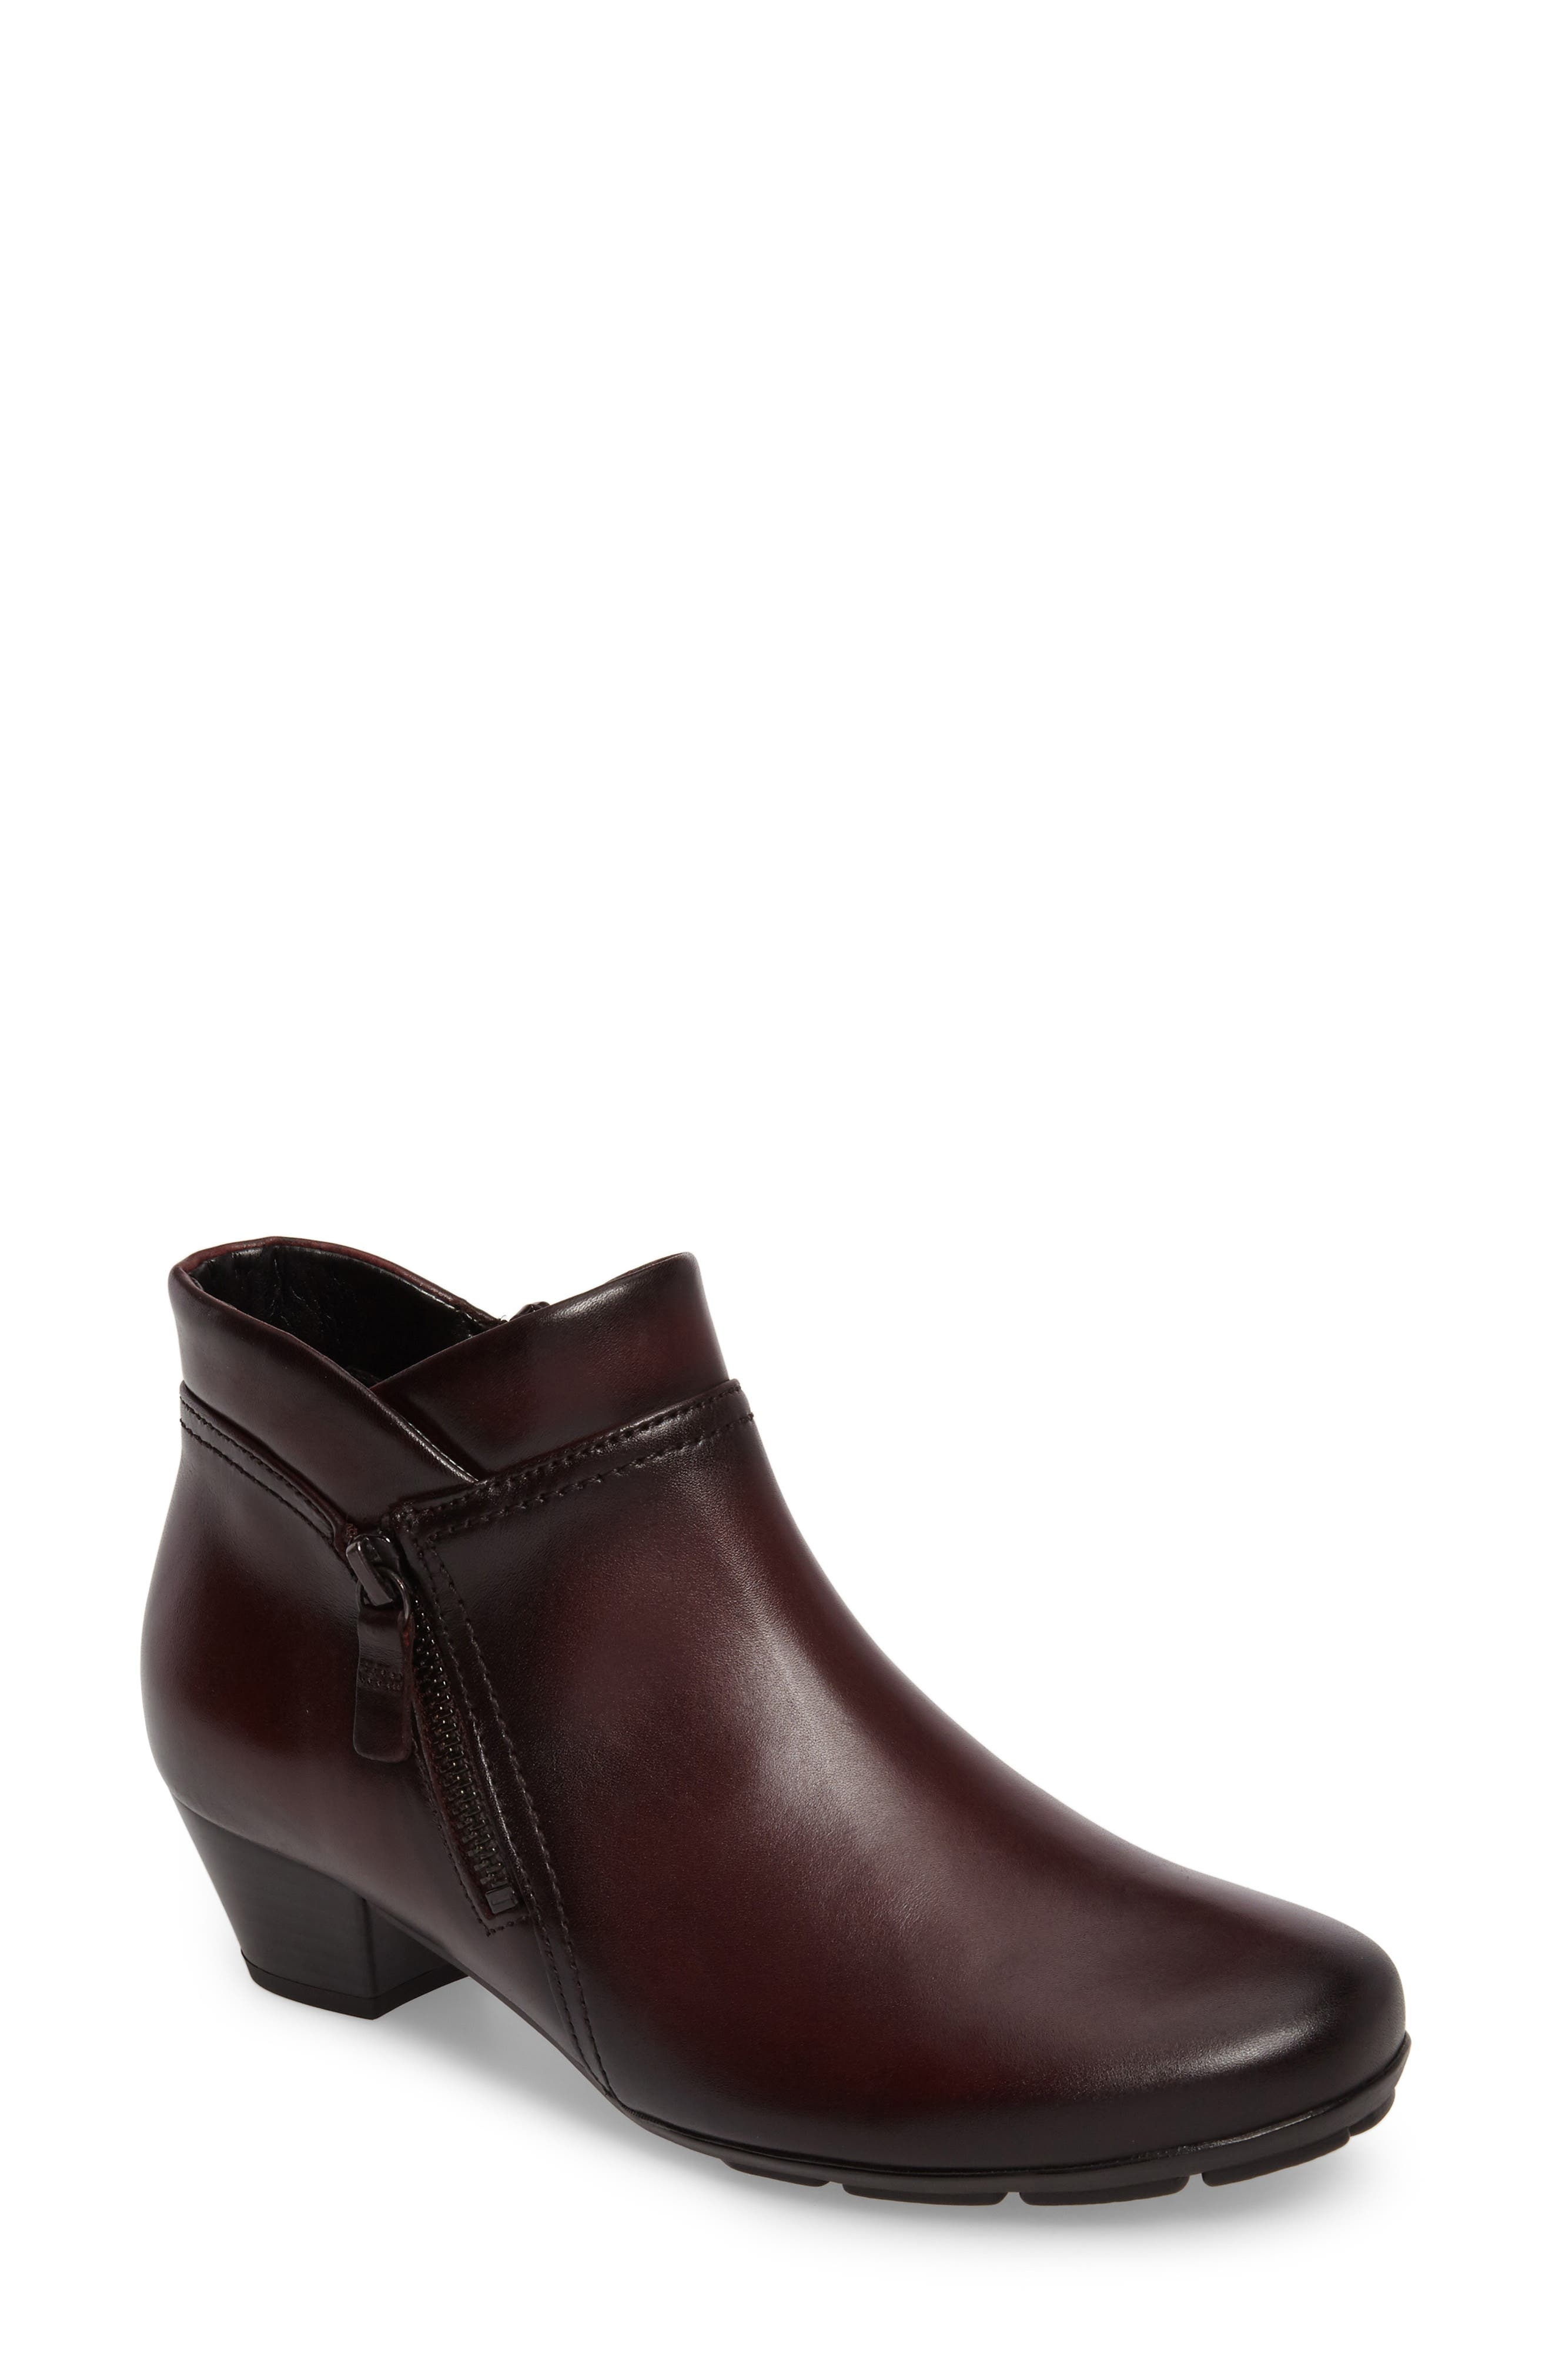 Gabor Classic Ankle Boot (Women)